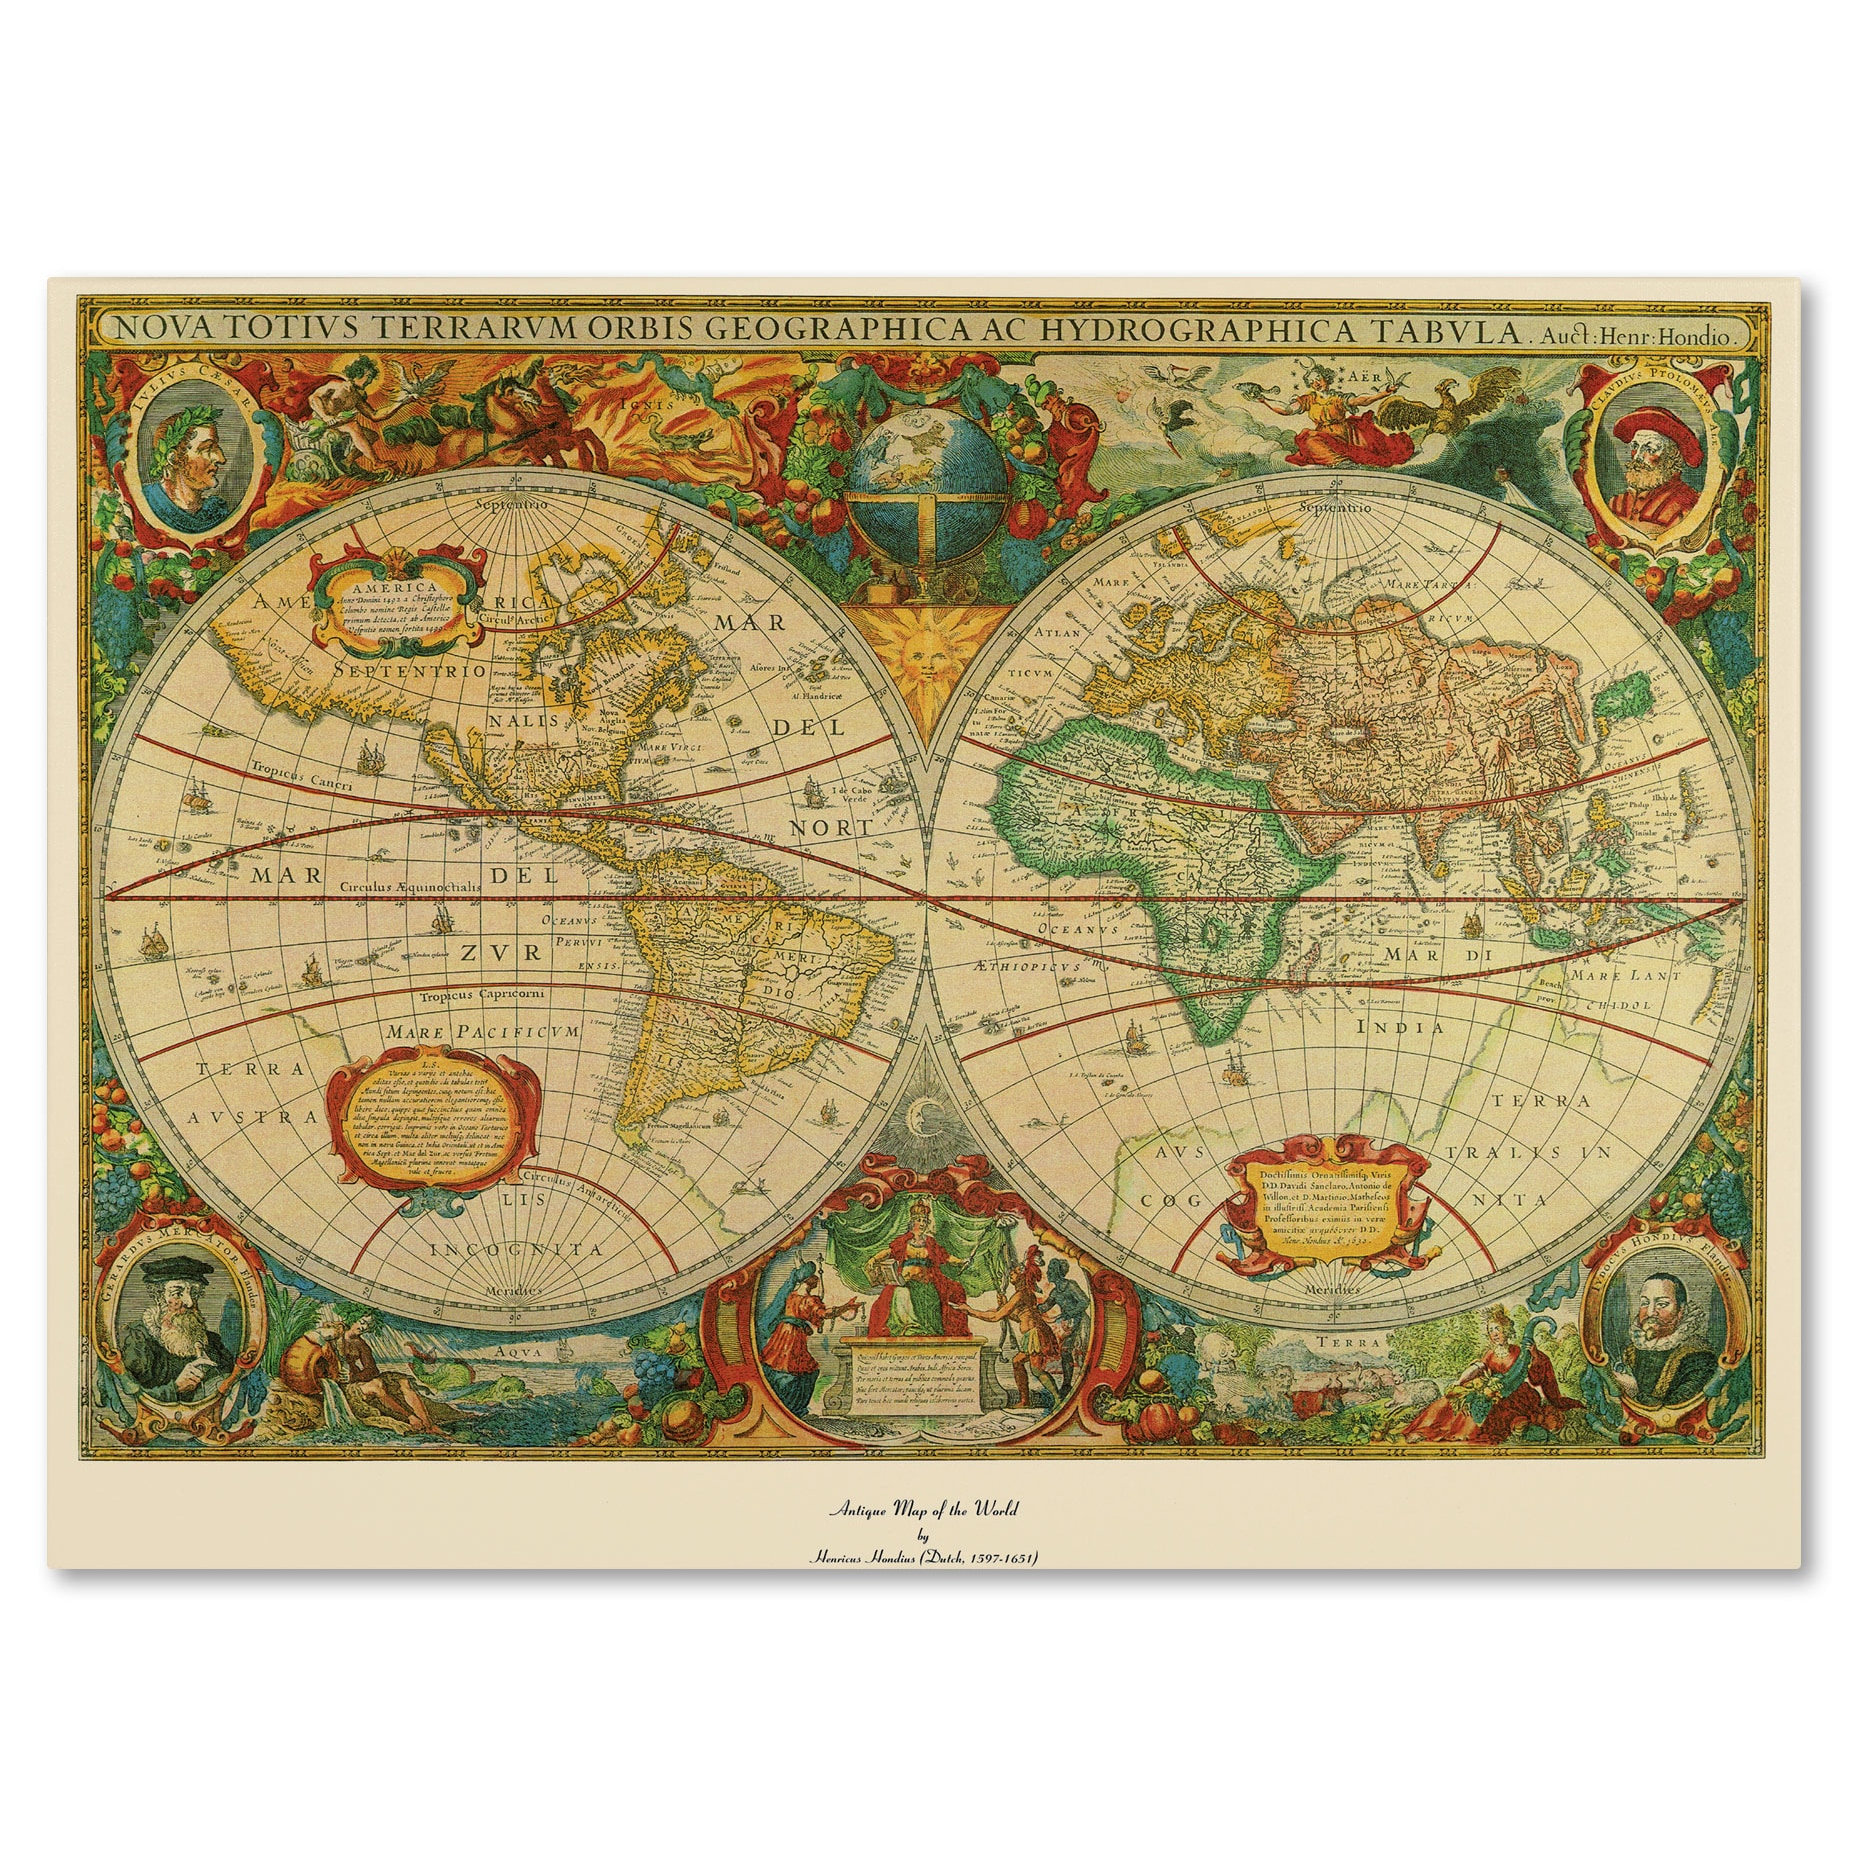 Shop old world map painting on canvas on sale free shipping shop old world map painting on canvas on sale free shipping today overstock 2767773 gumiabroncs Gallery